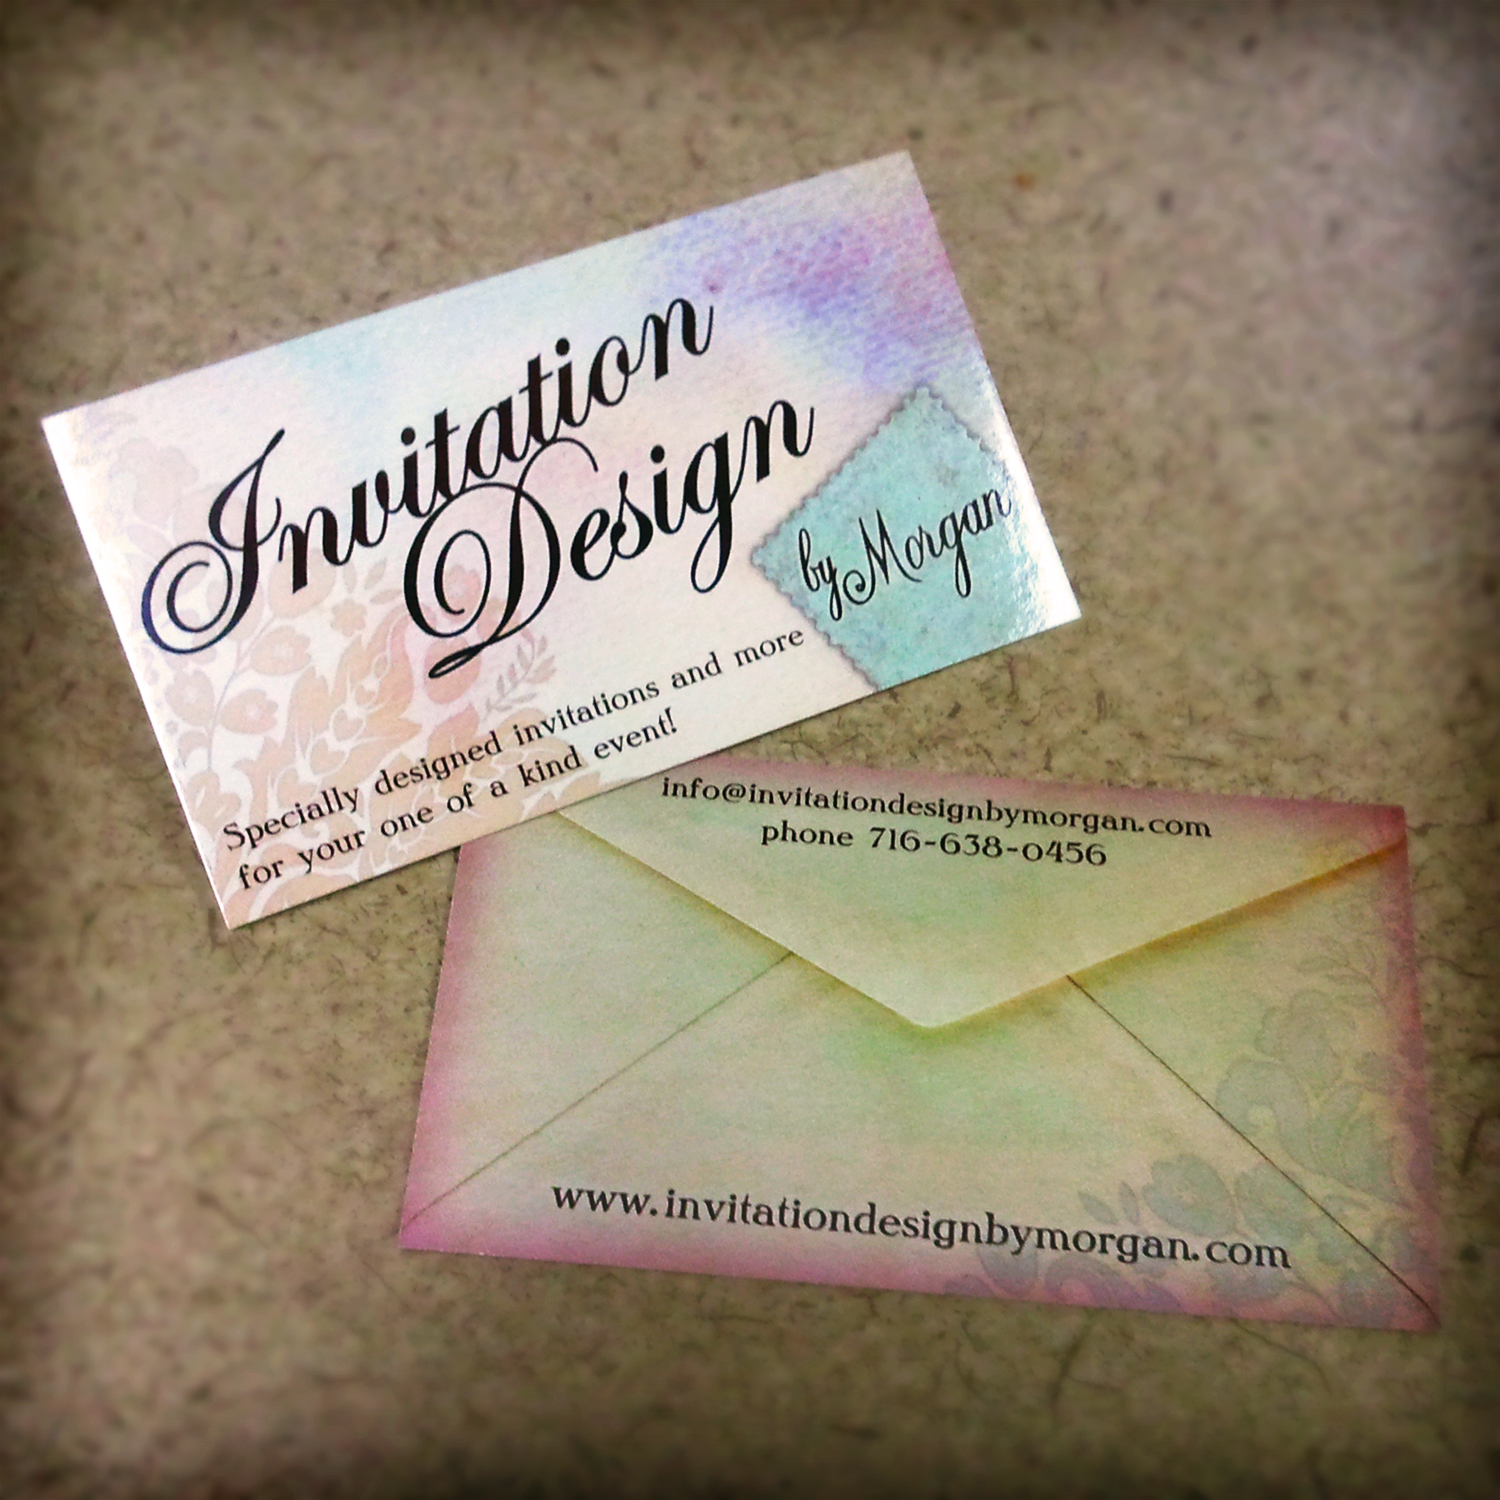 1000+ images about Great Business Card Design on Pinterest